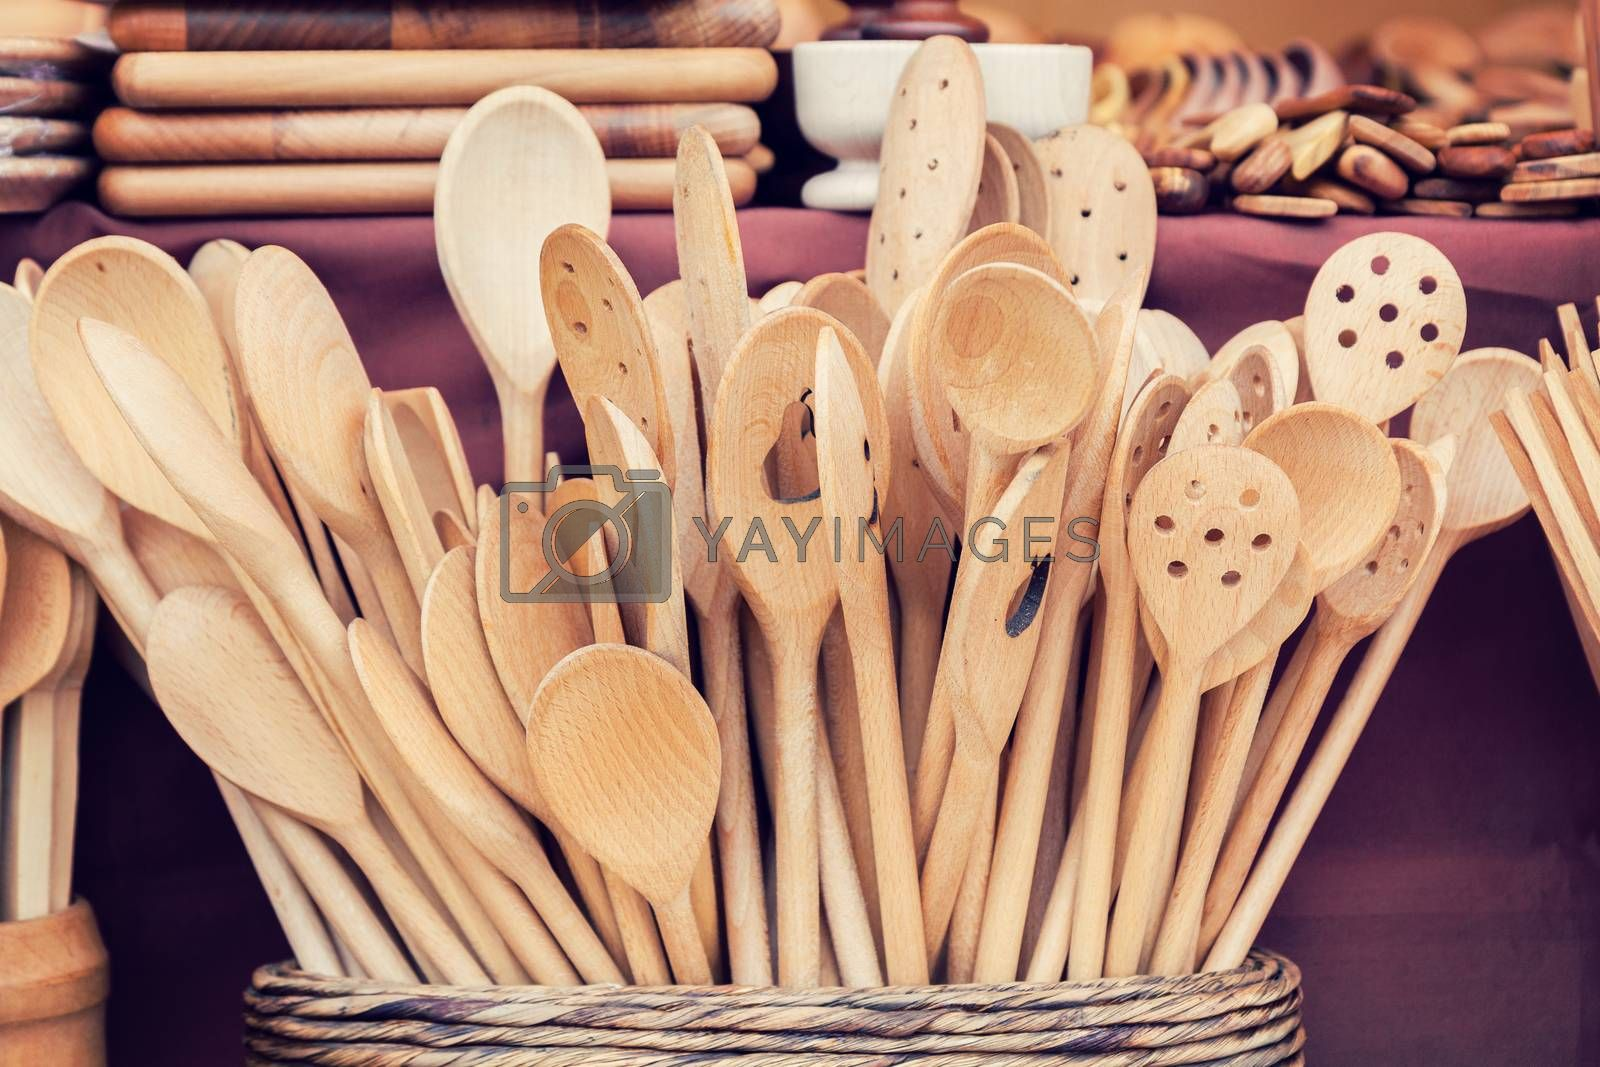 Handmade wooden kitchen utensils for sale at the market